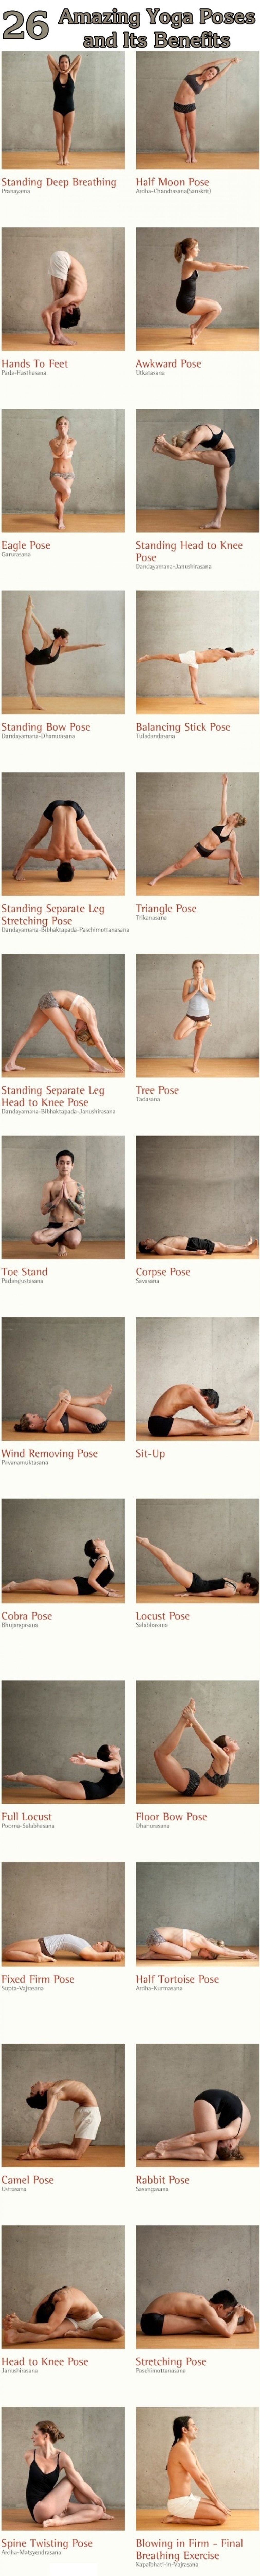 Postures of Yoga Infographic